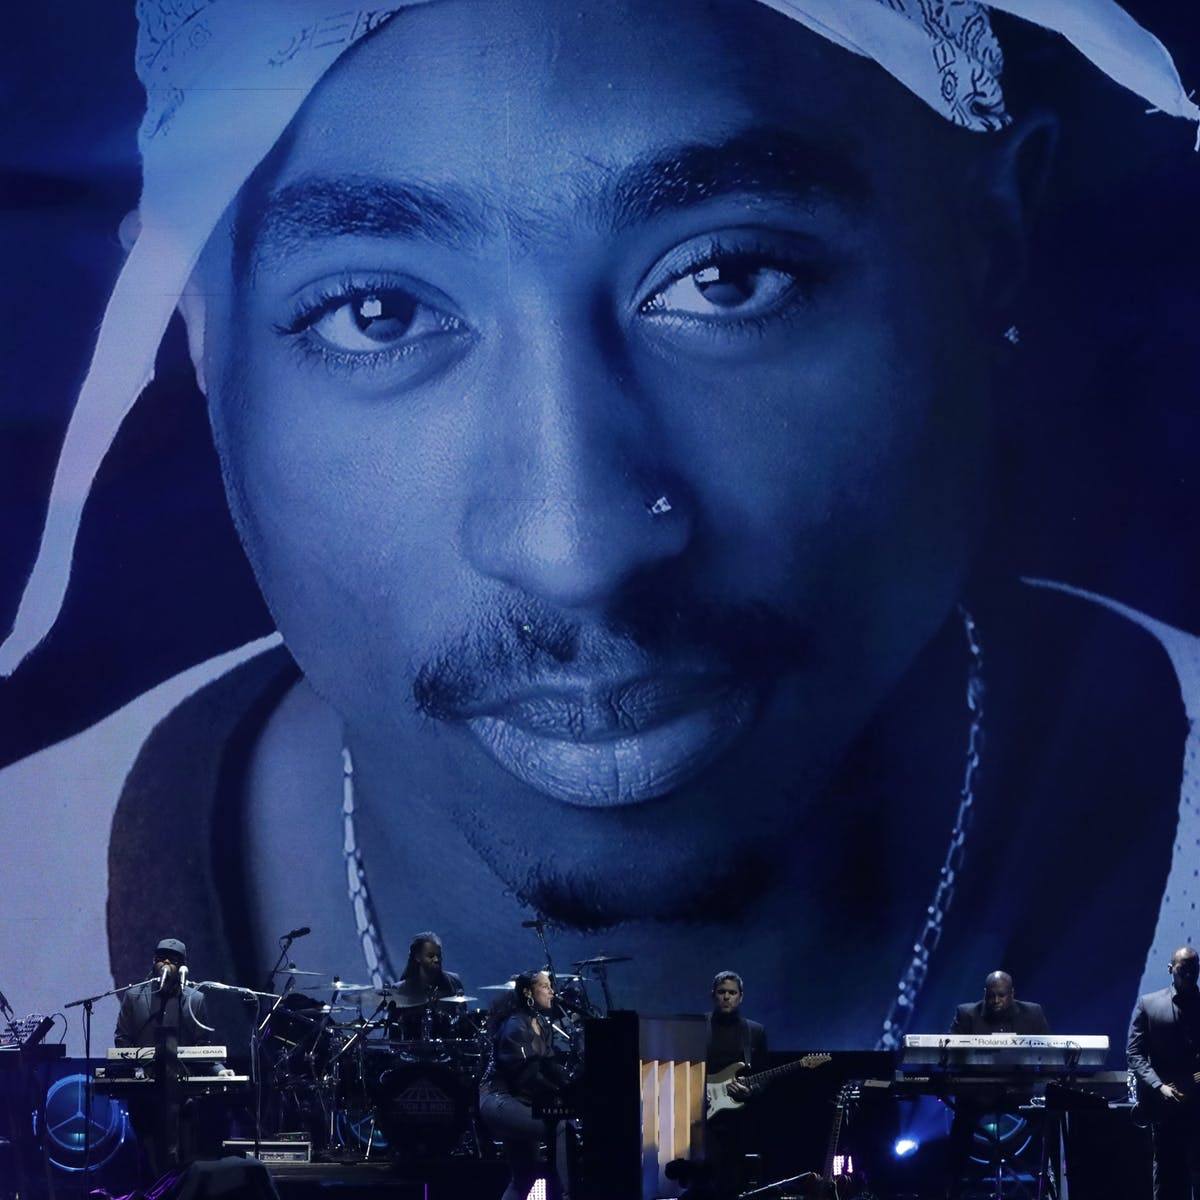 In Tupac's life, the struggles and triumphs of a generation